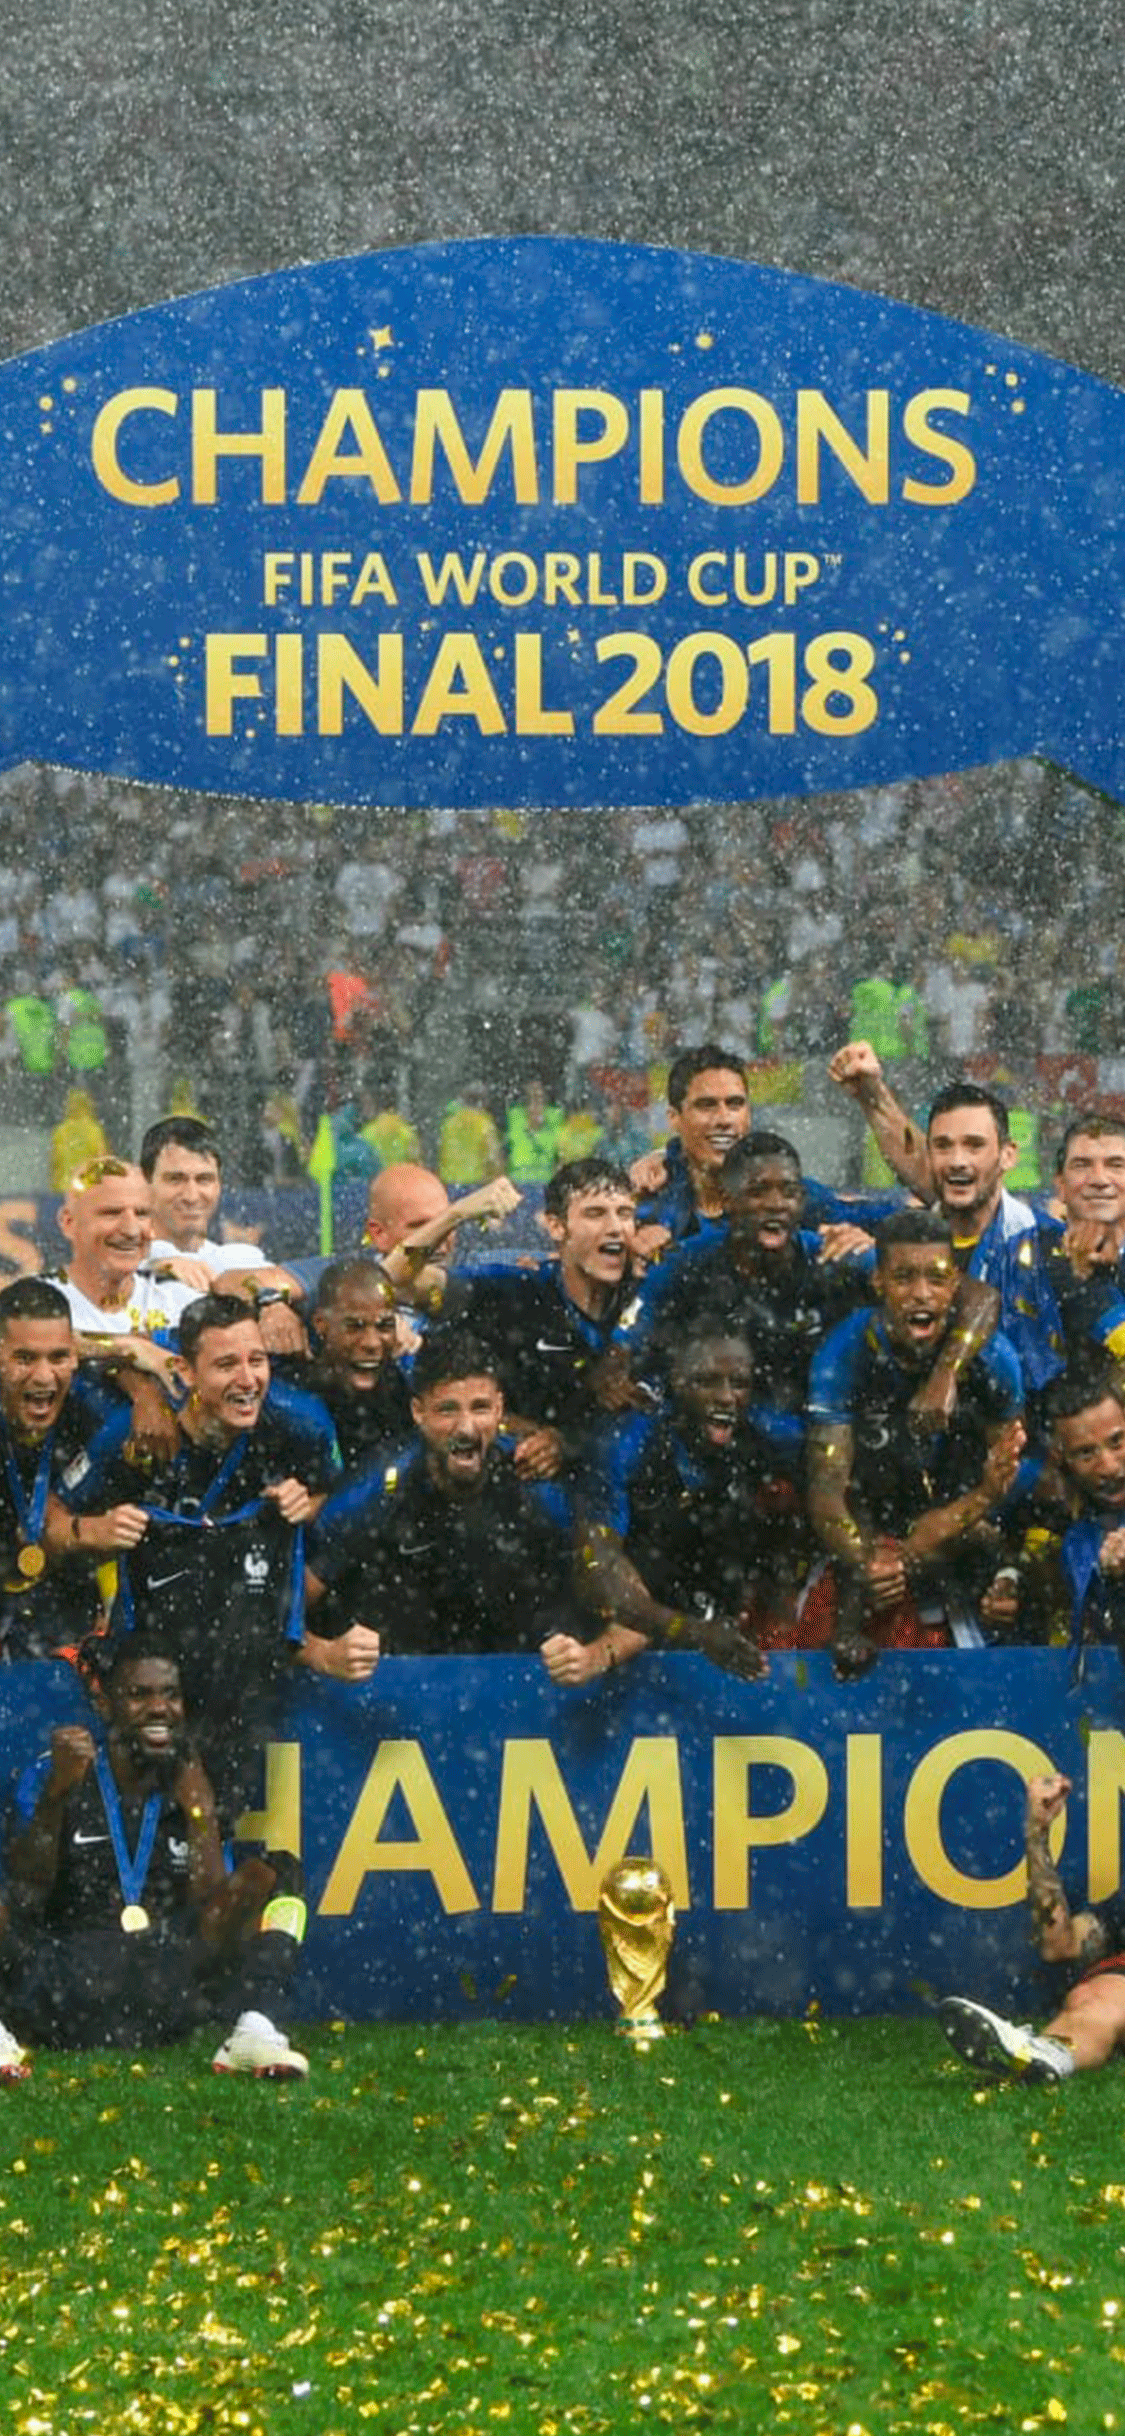 iPhone wallpaper fifa world cup 2018 france2 Fonds d'écran iPhone du 17/07/2018